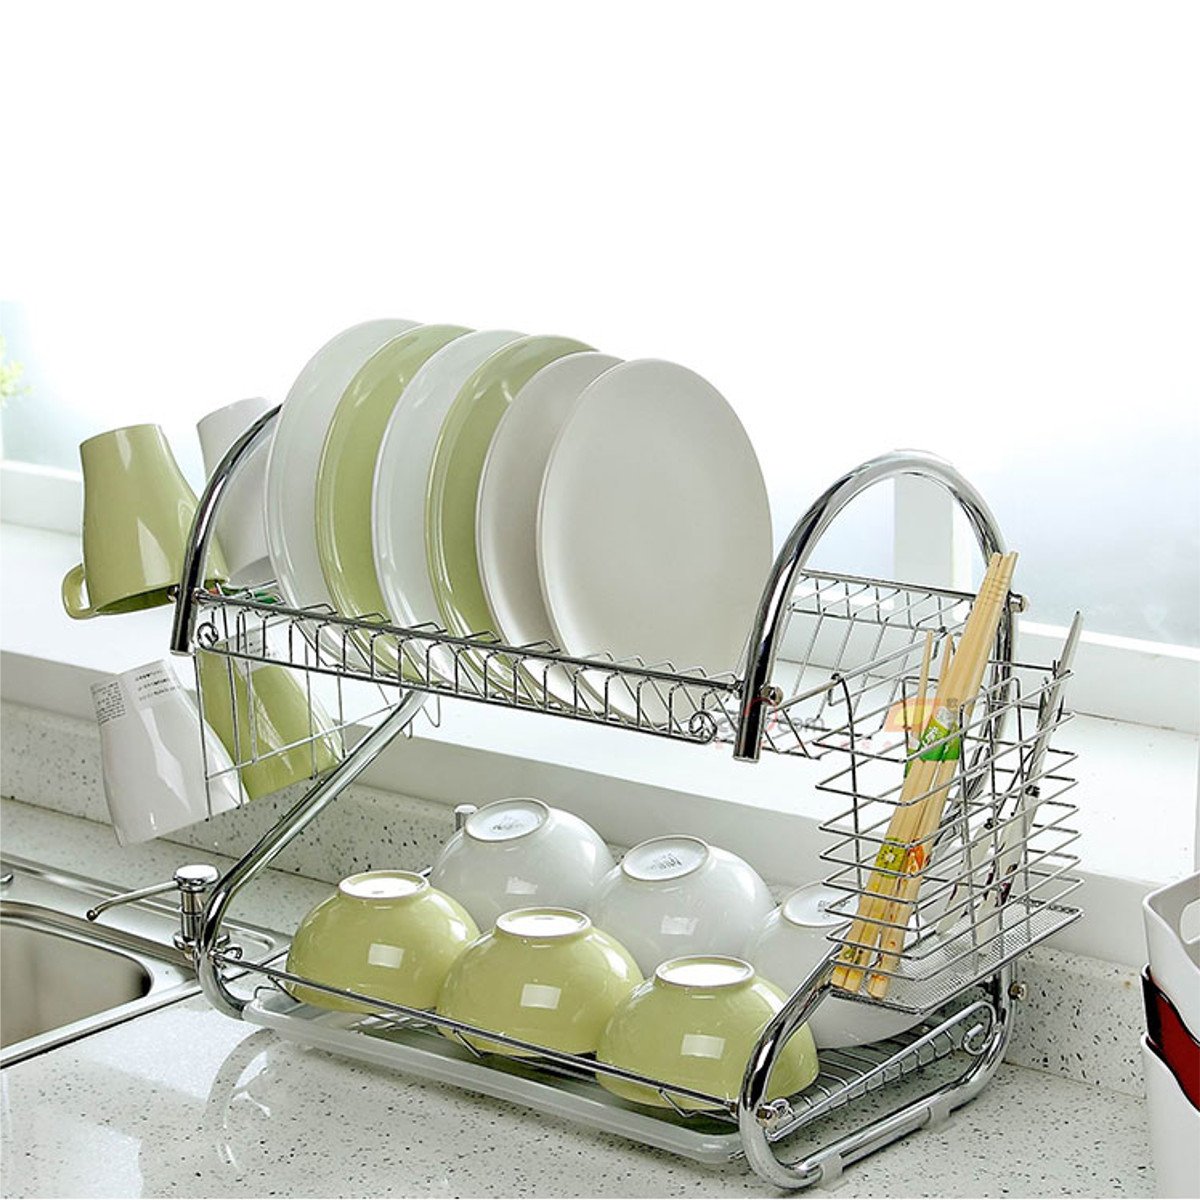 2 Tier Stainless Steel Plate Holder Chrome Plate Dish Cup Cutlery Drainer Rack Drip Tray Plates Storage Holder Home Kitchen Organizer